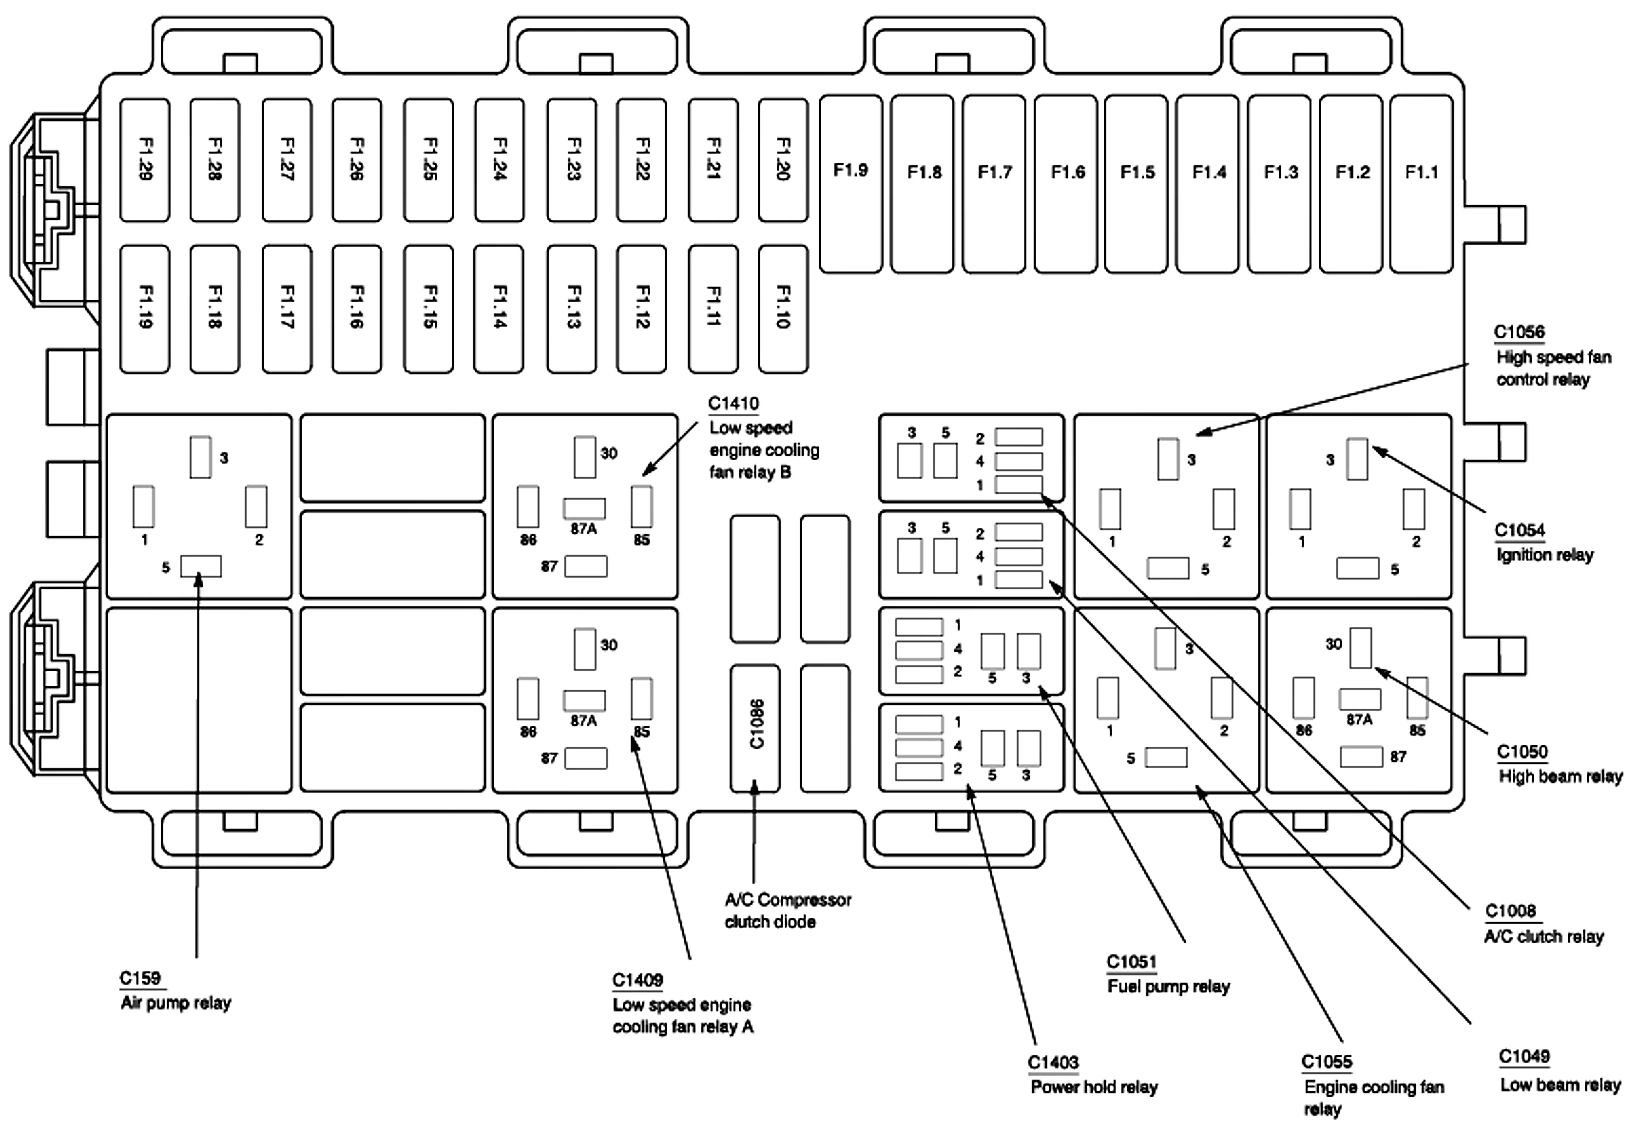 Is There Any Place I Can Get A Fuse Box Layout Diagram So That I Know Which Fuse Is For What En 2020 Ford Lincoln